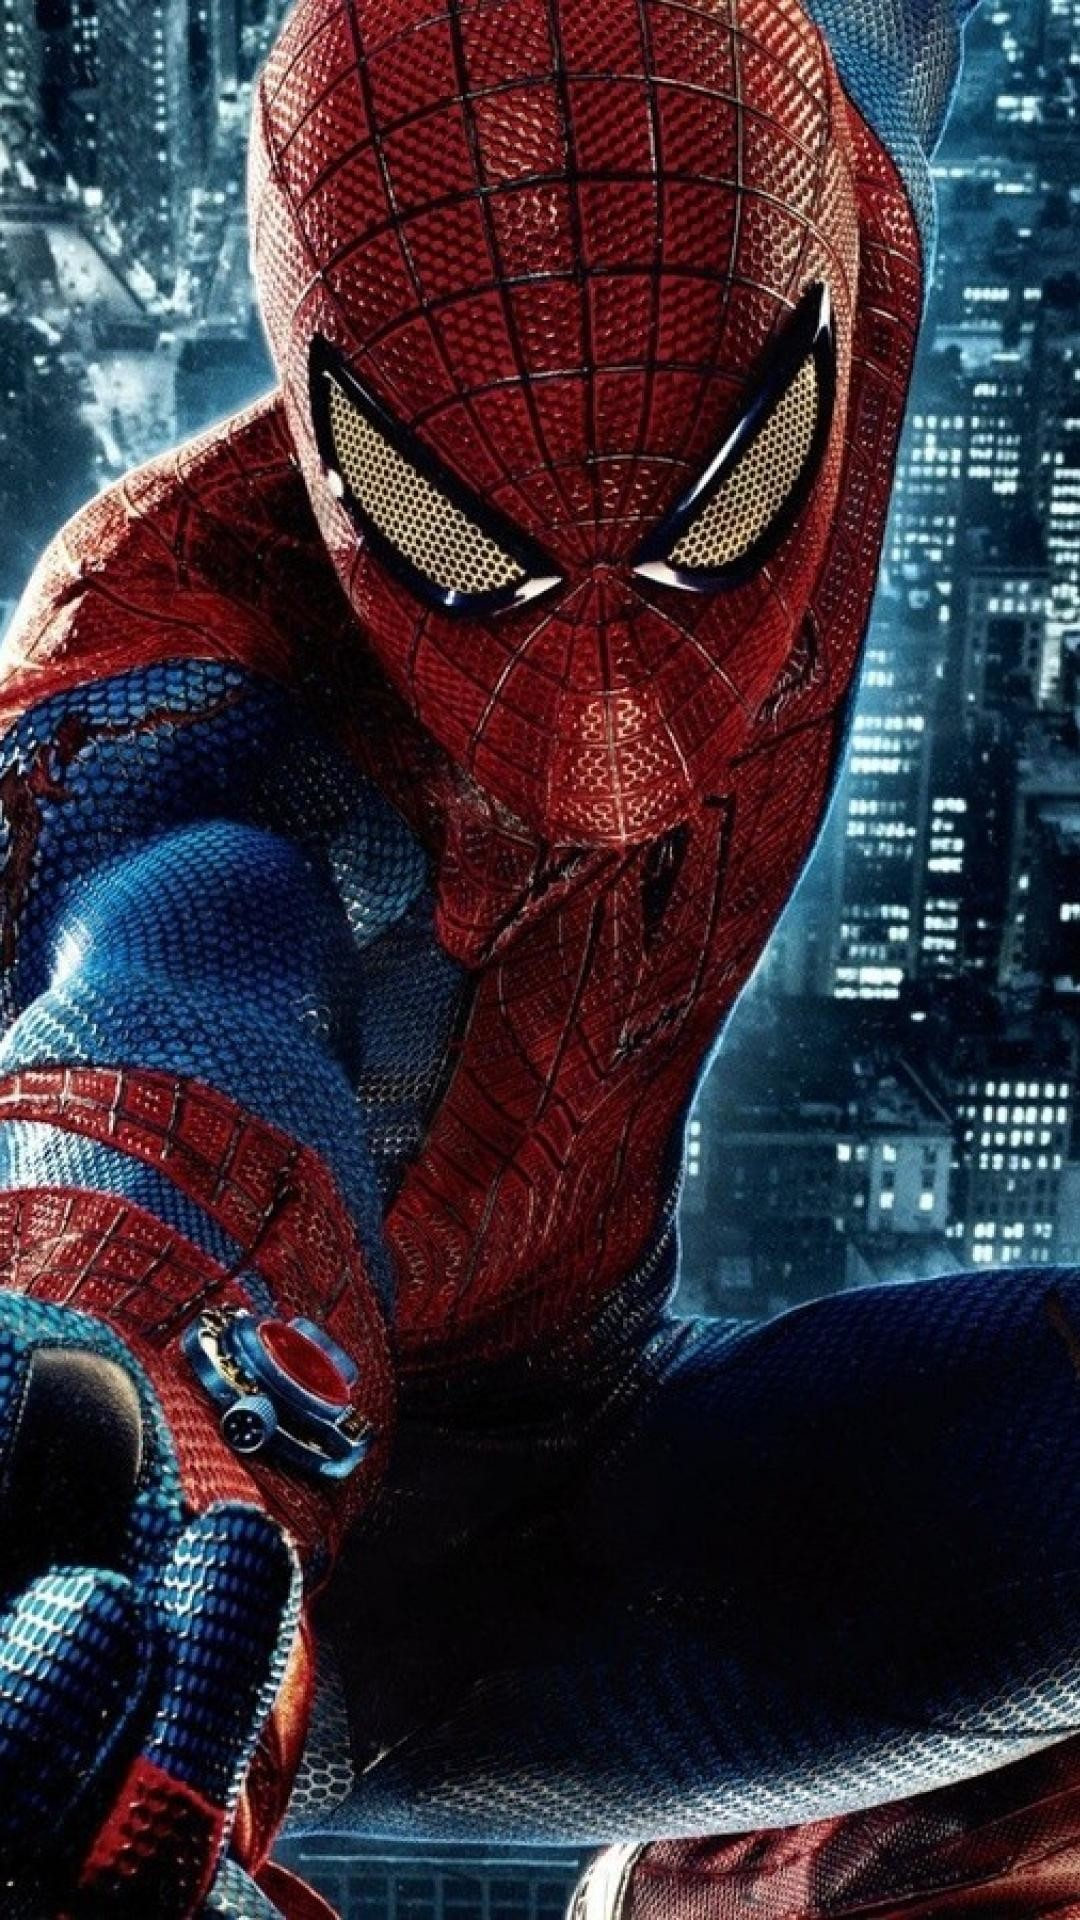 Spiderman iPhone Wallpaper HD (83+ images)